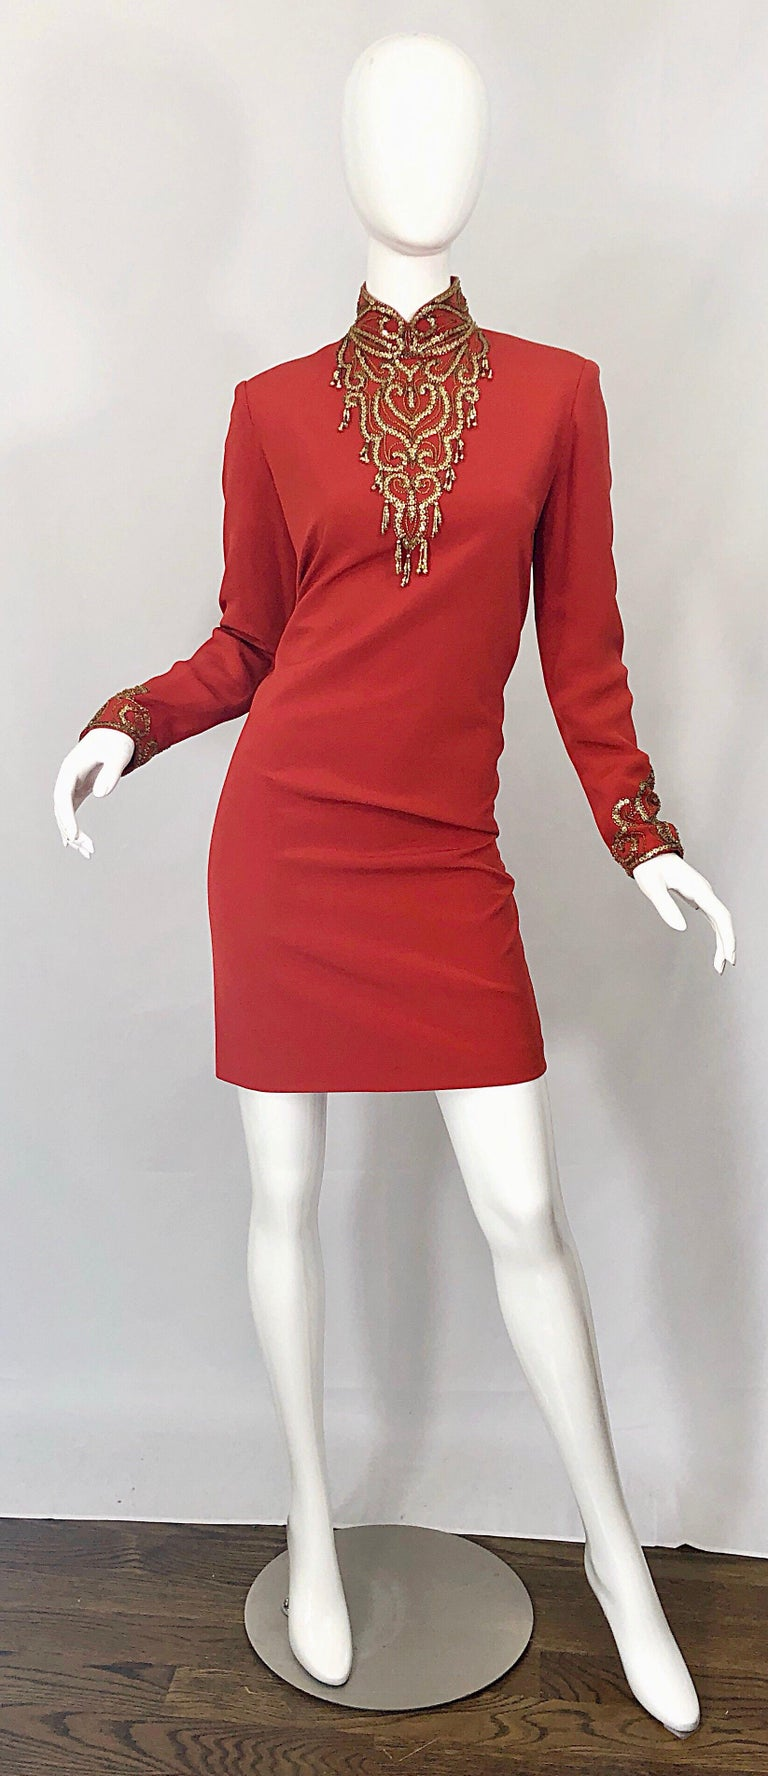 Beautiful vintage OLEG CASSINI burnt orange and gold beaded long sleeve high neck silk cocktail dress! Features hundreds of gold beads around the neck, chest and each sleeve cuff. Chic gold beaded tassels adorn the edges on the chest. Full lined.